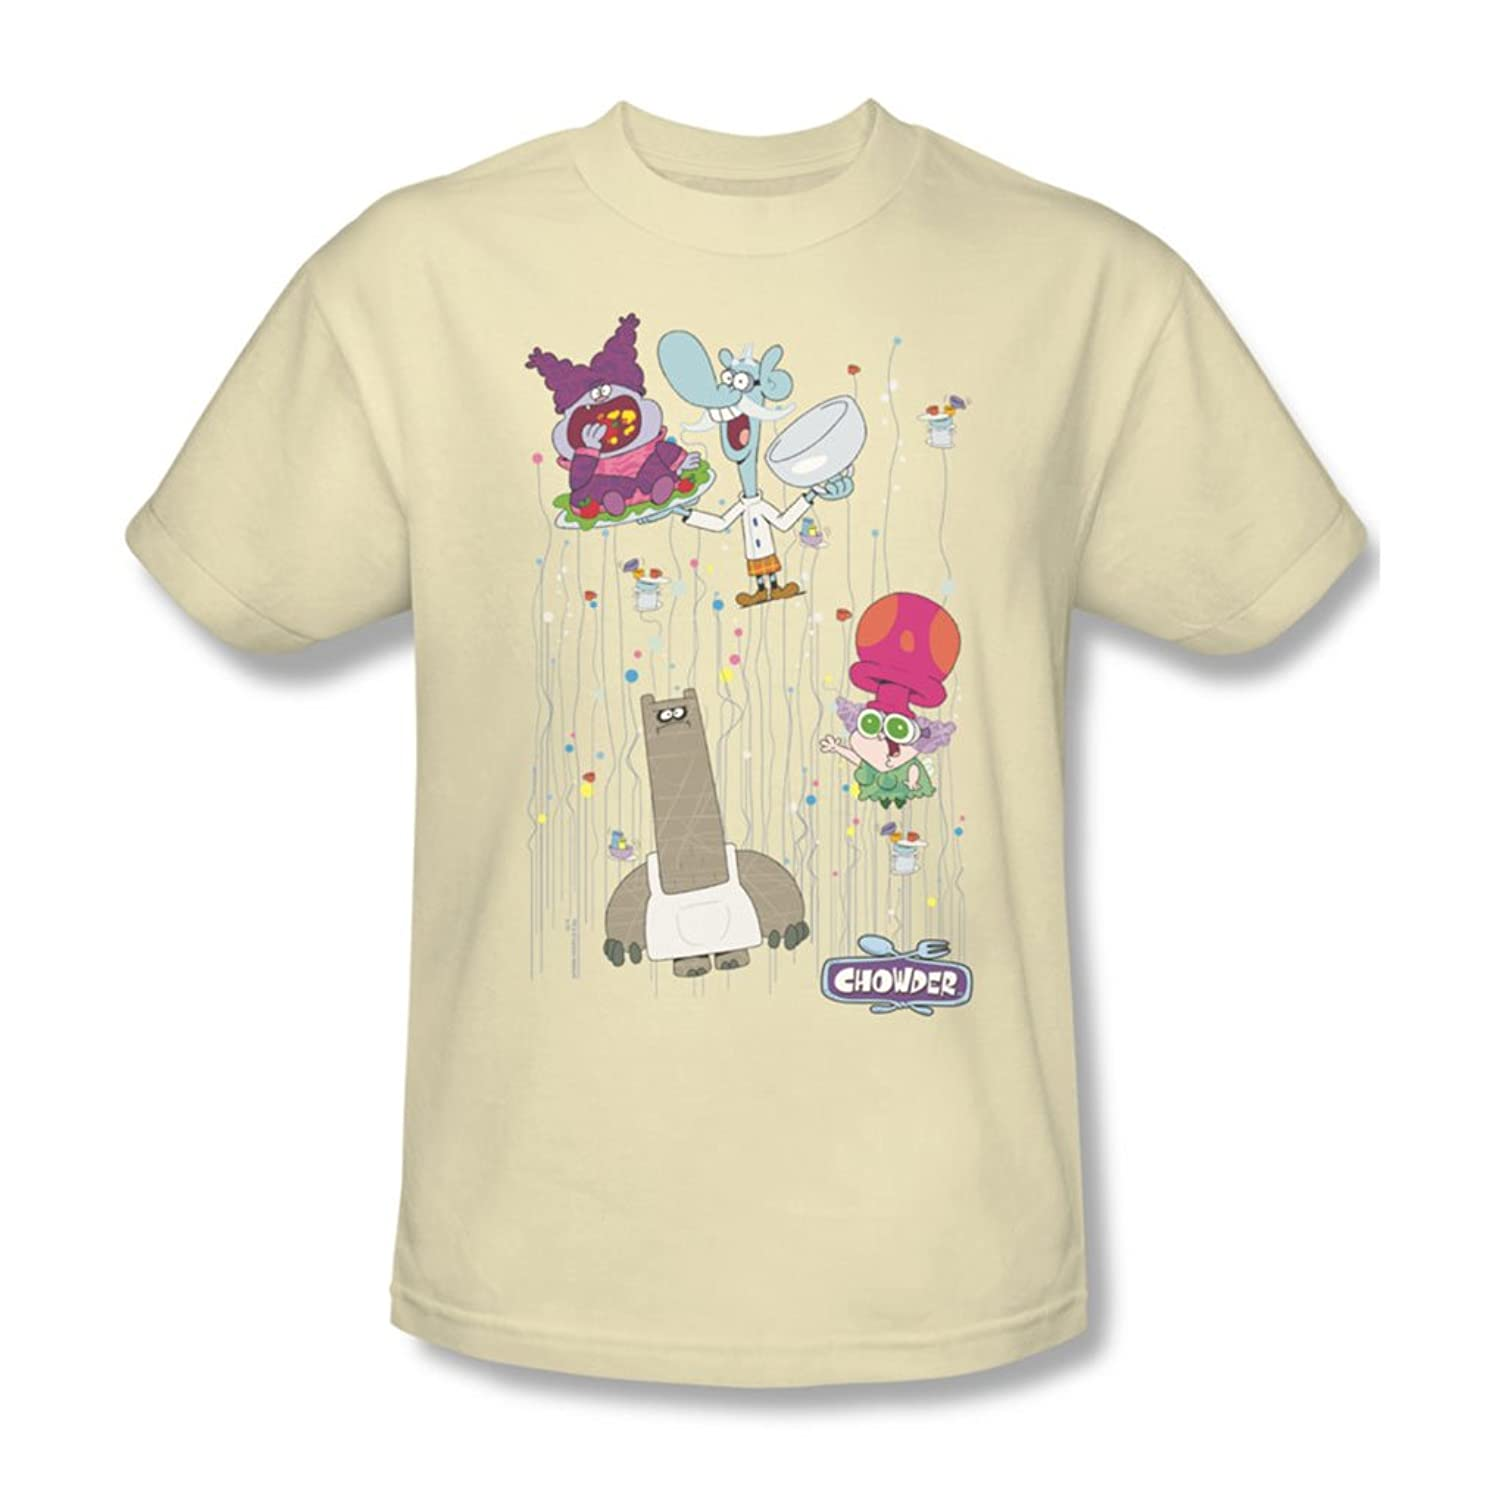 Chowder - Mens Dots Collage T-Shirt